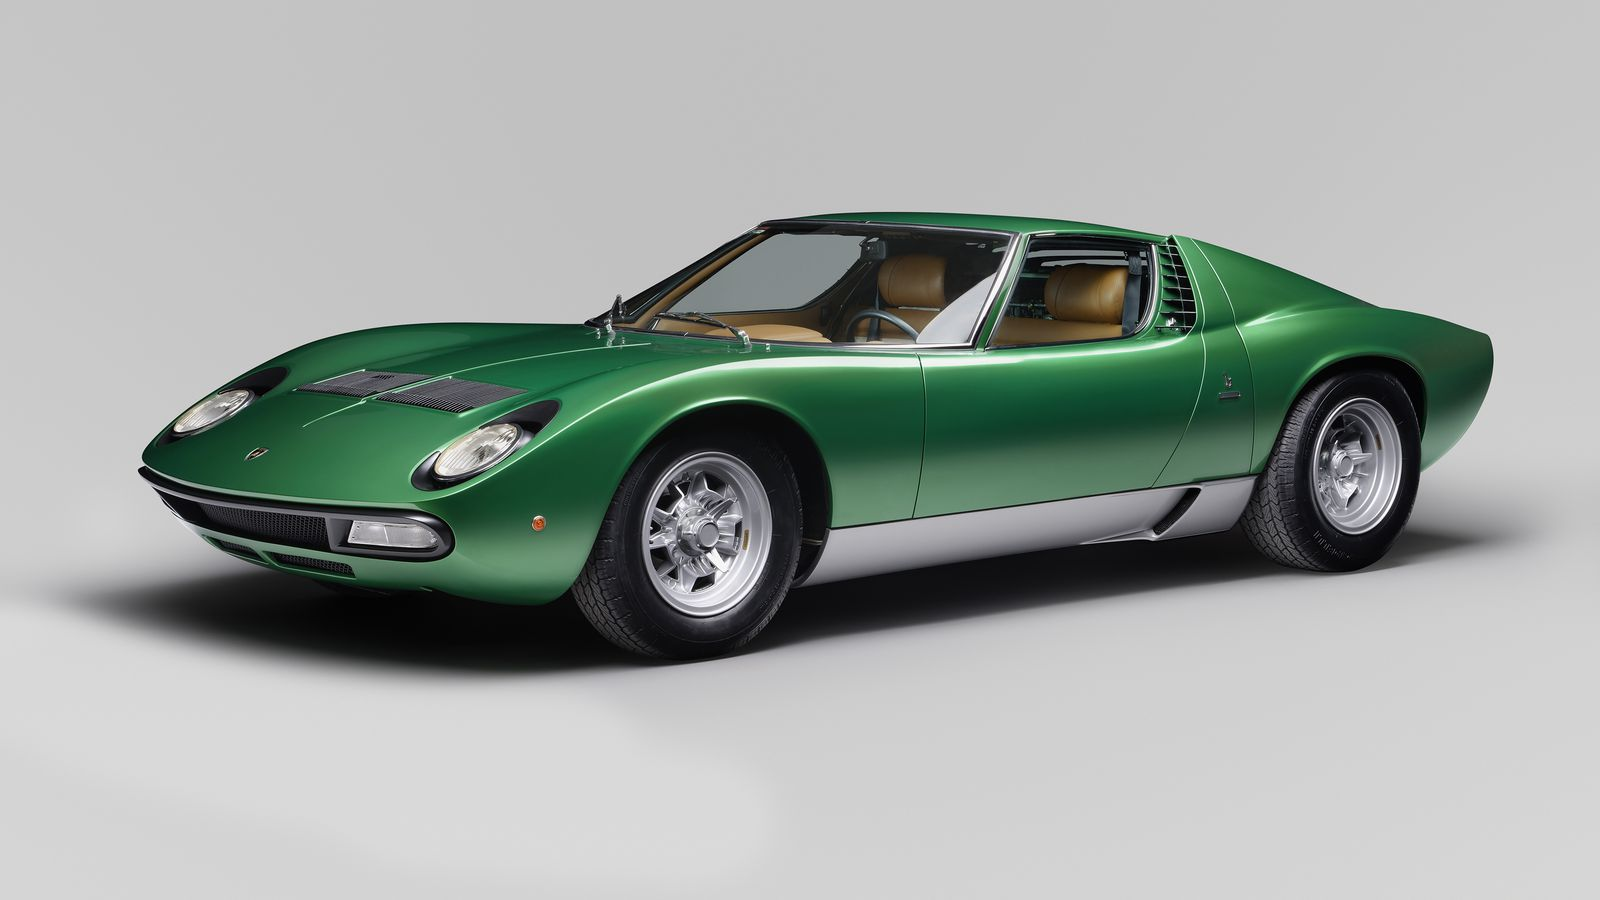 lamborghini completely restored the first miura sv for the cars 50th anniversary the verge